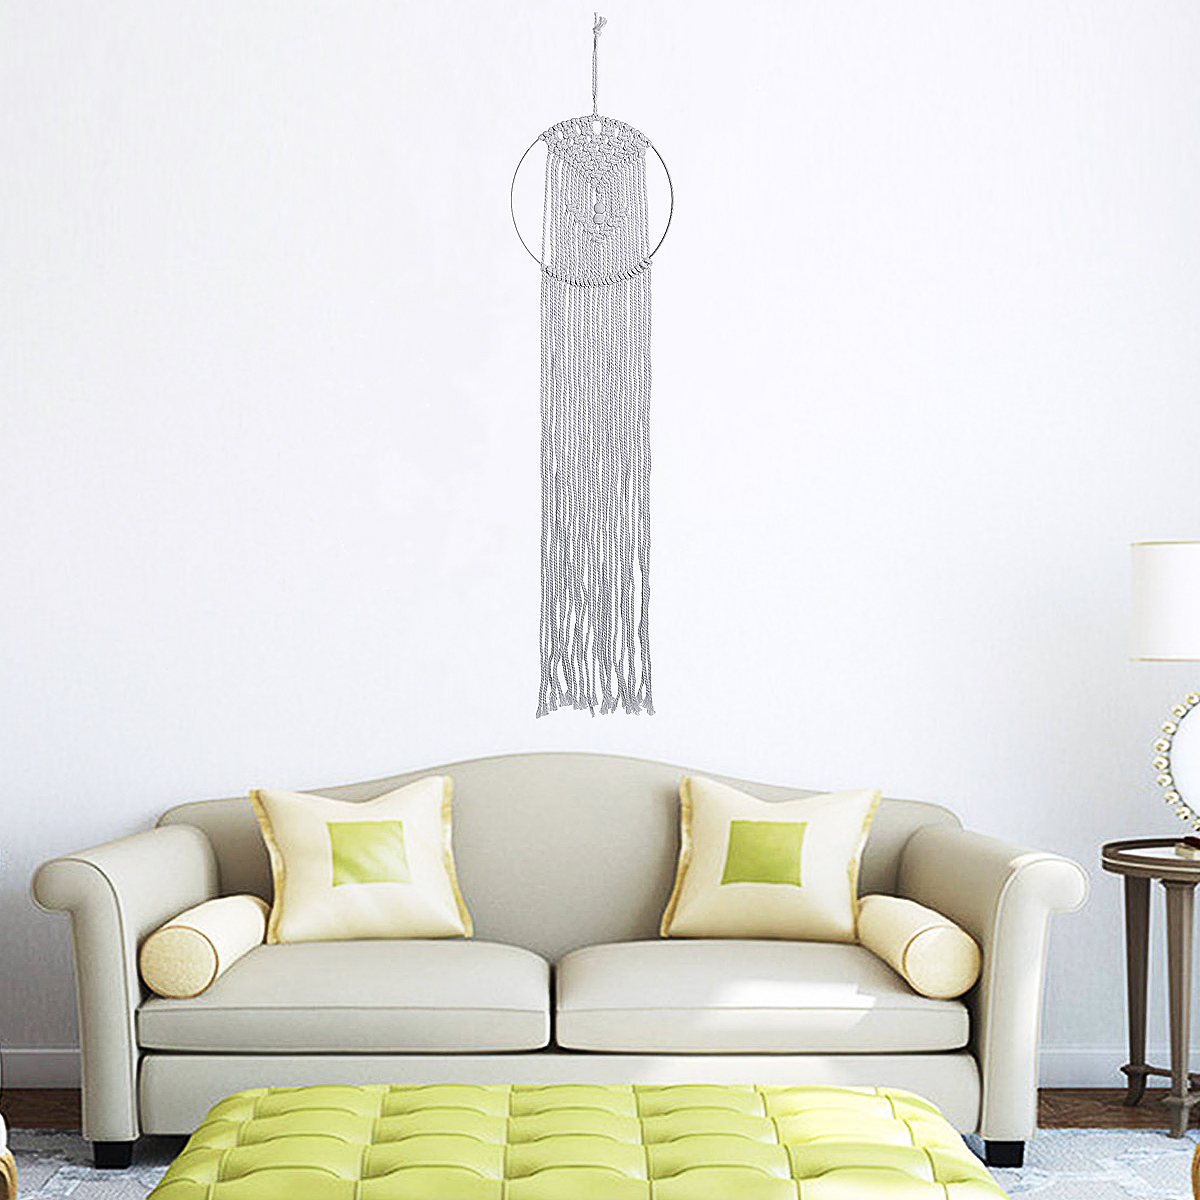 Macrame Woven Art Wall Hanging Tapestry Handmade Cotton Chic Bohemian Home Decor